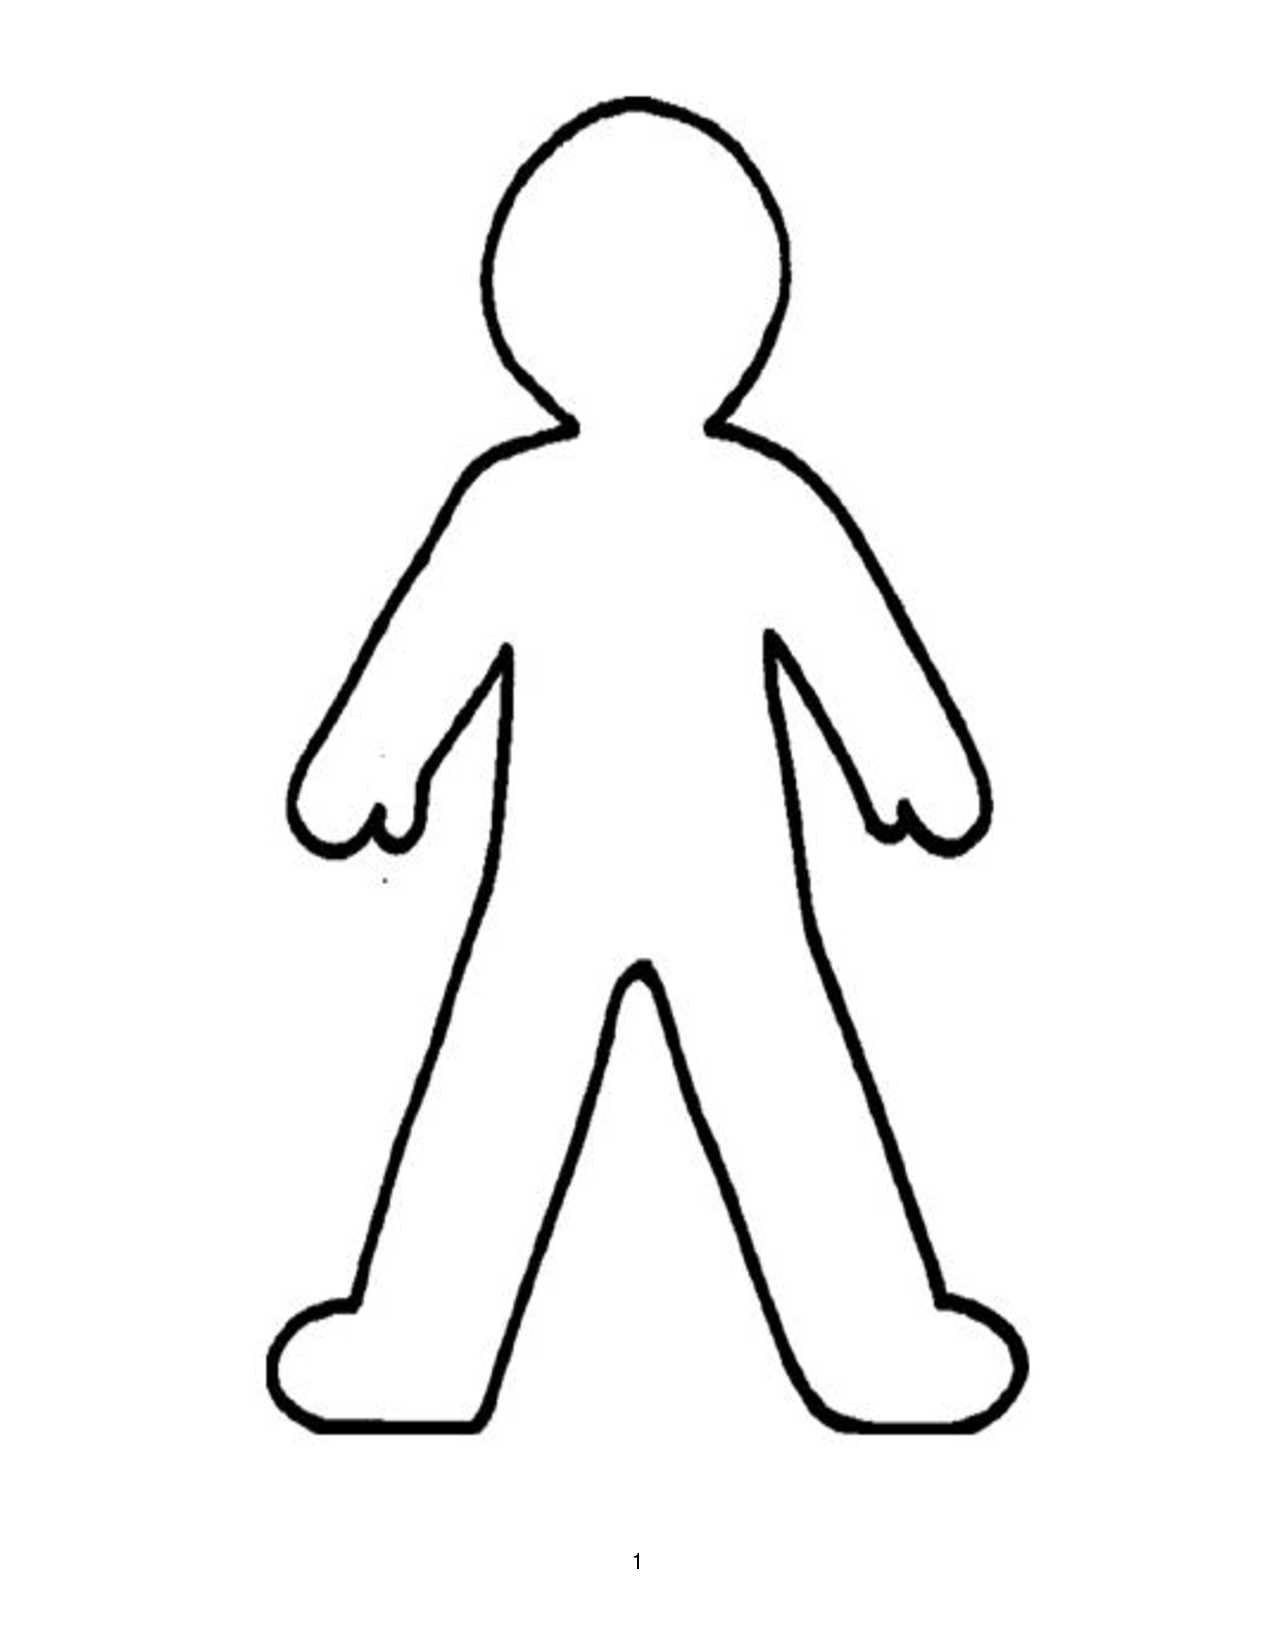 Doll Outline Template ClipArt Best Printable Pinterest School